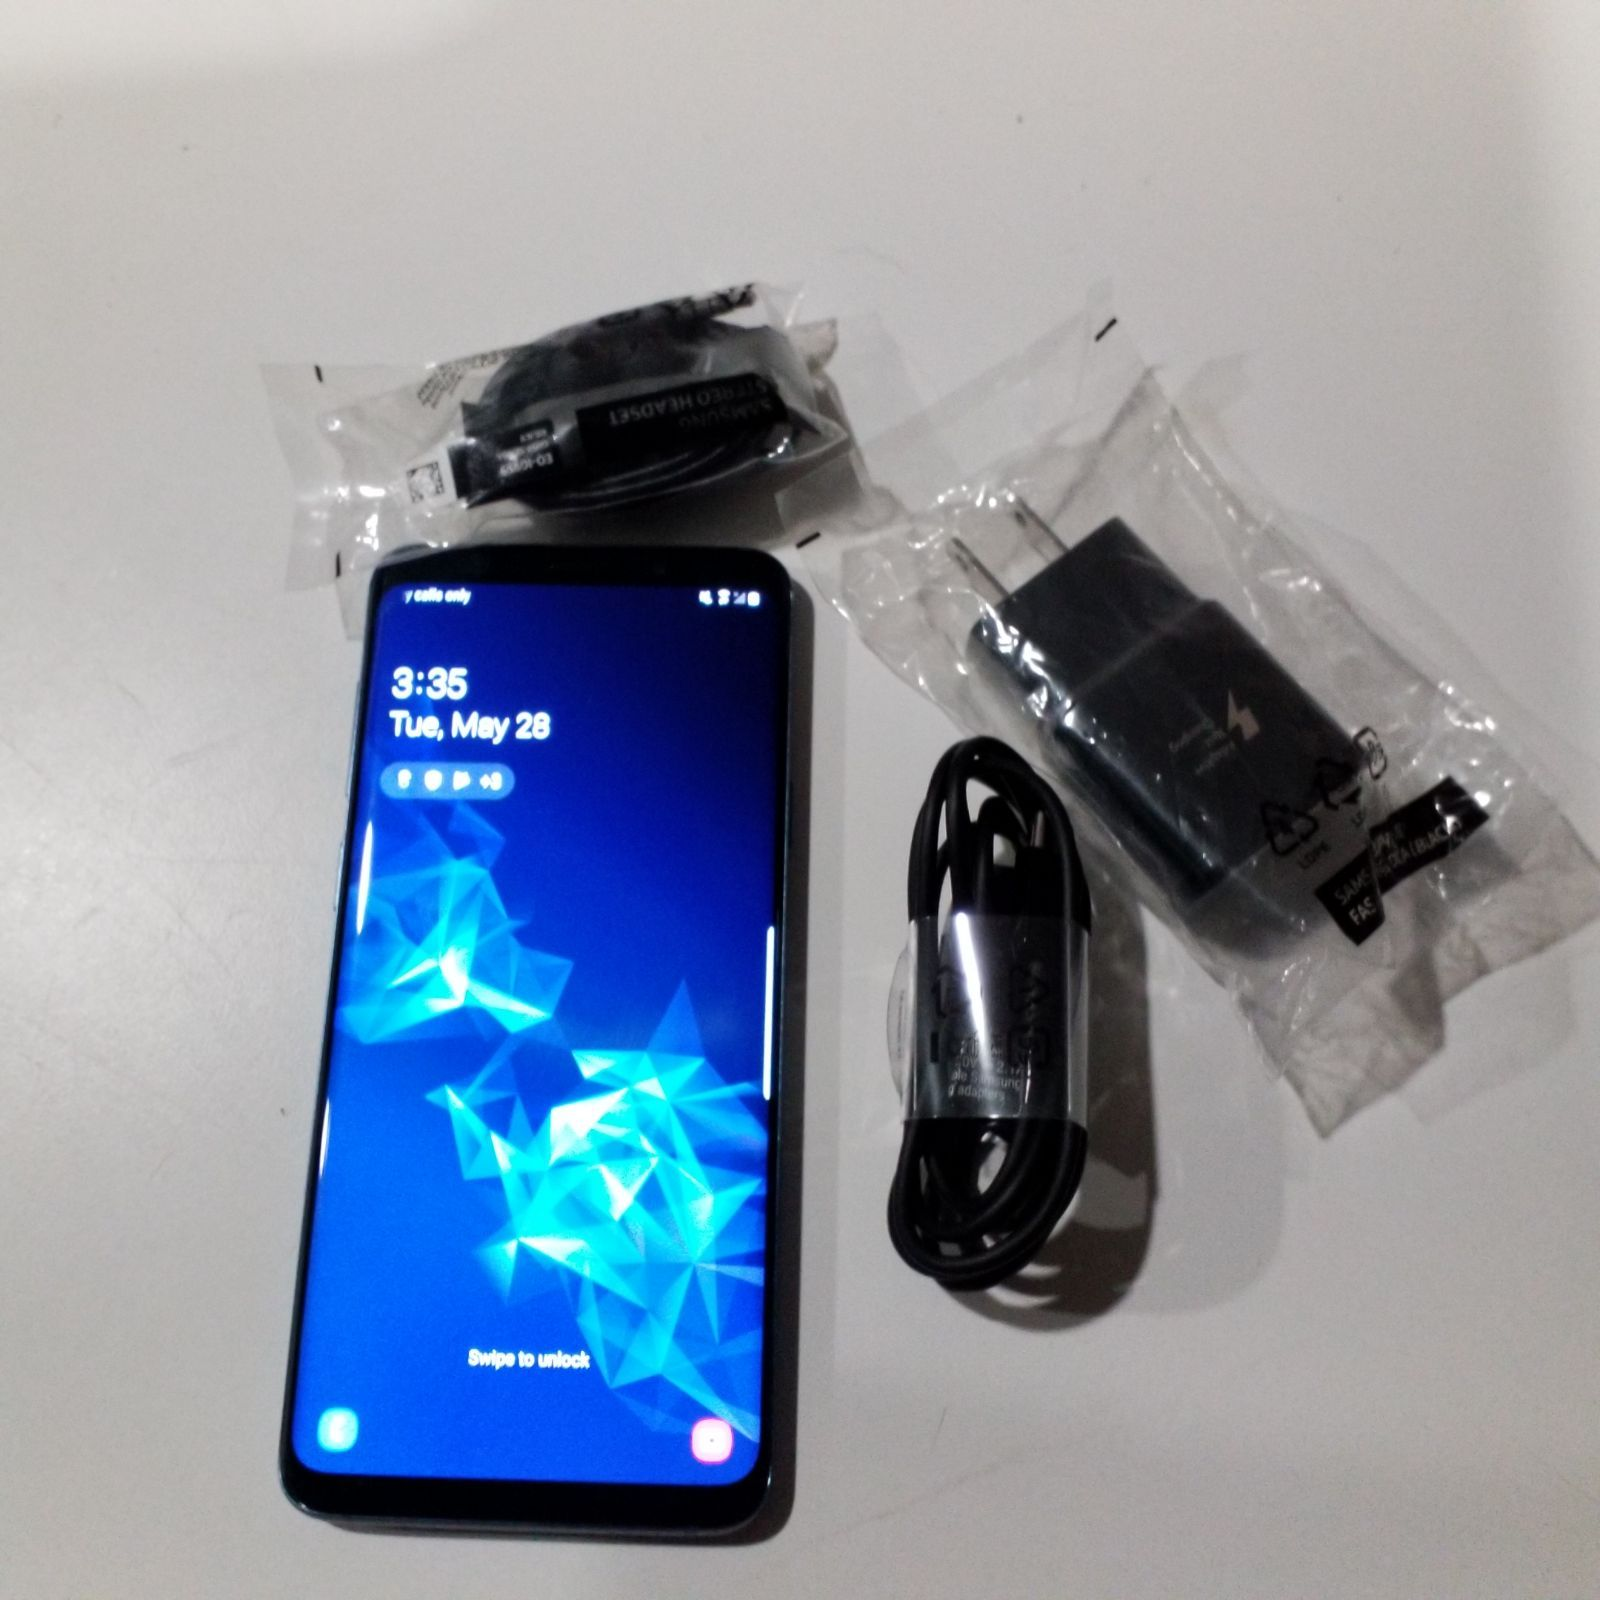 Samsung Galaxy S9 Plus 64 Gb Blue Like New Conditions Unlocked Come With Charger Cable Wall Adapter And Samsung Galaxy S9 Samsung Samsung Galaxy